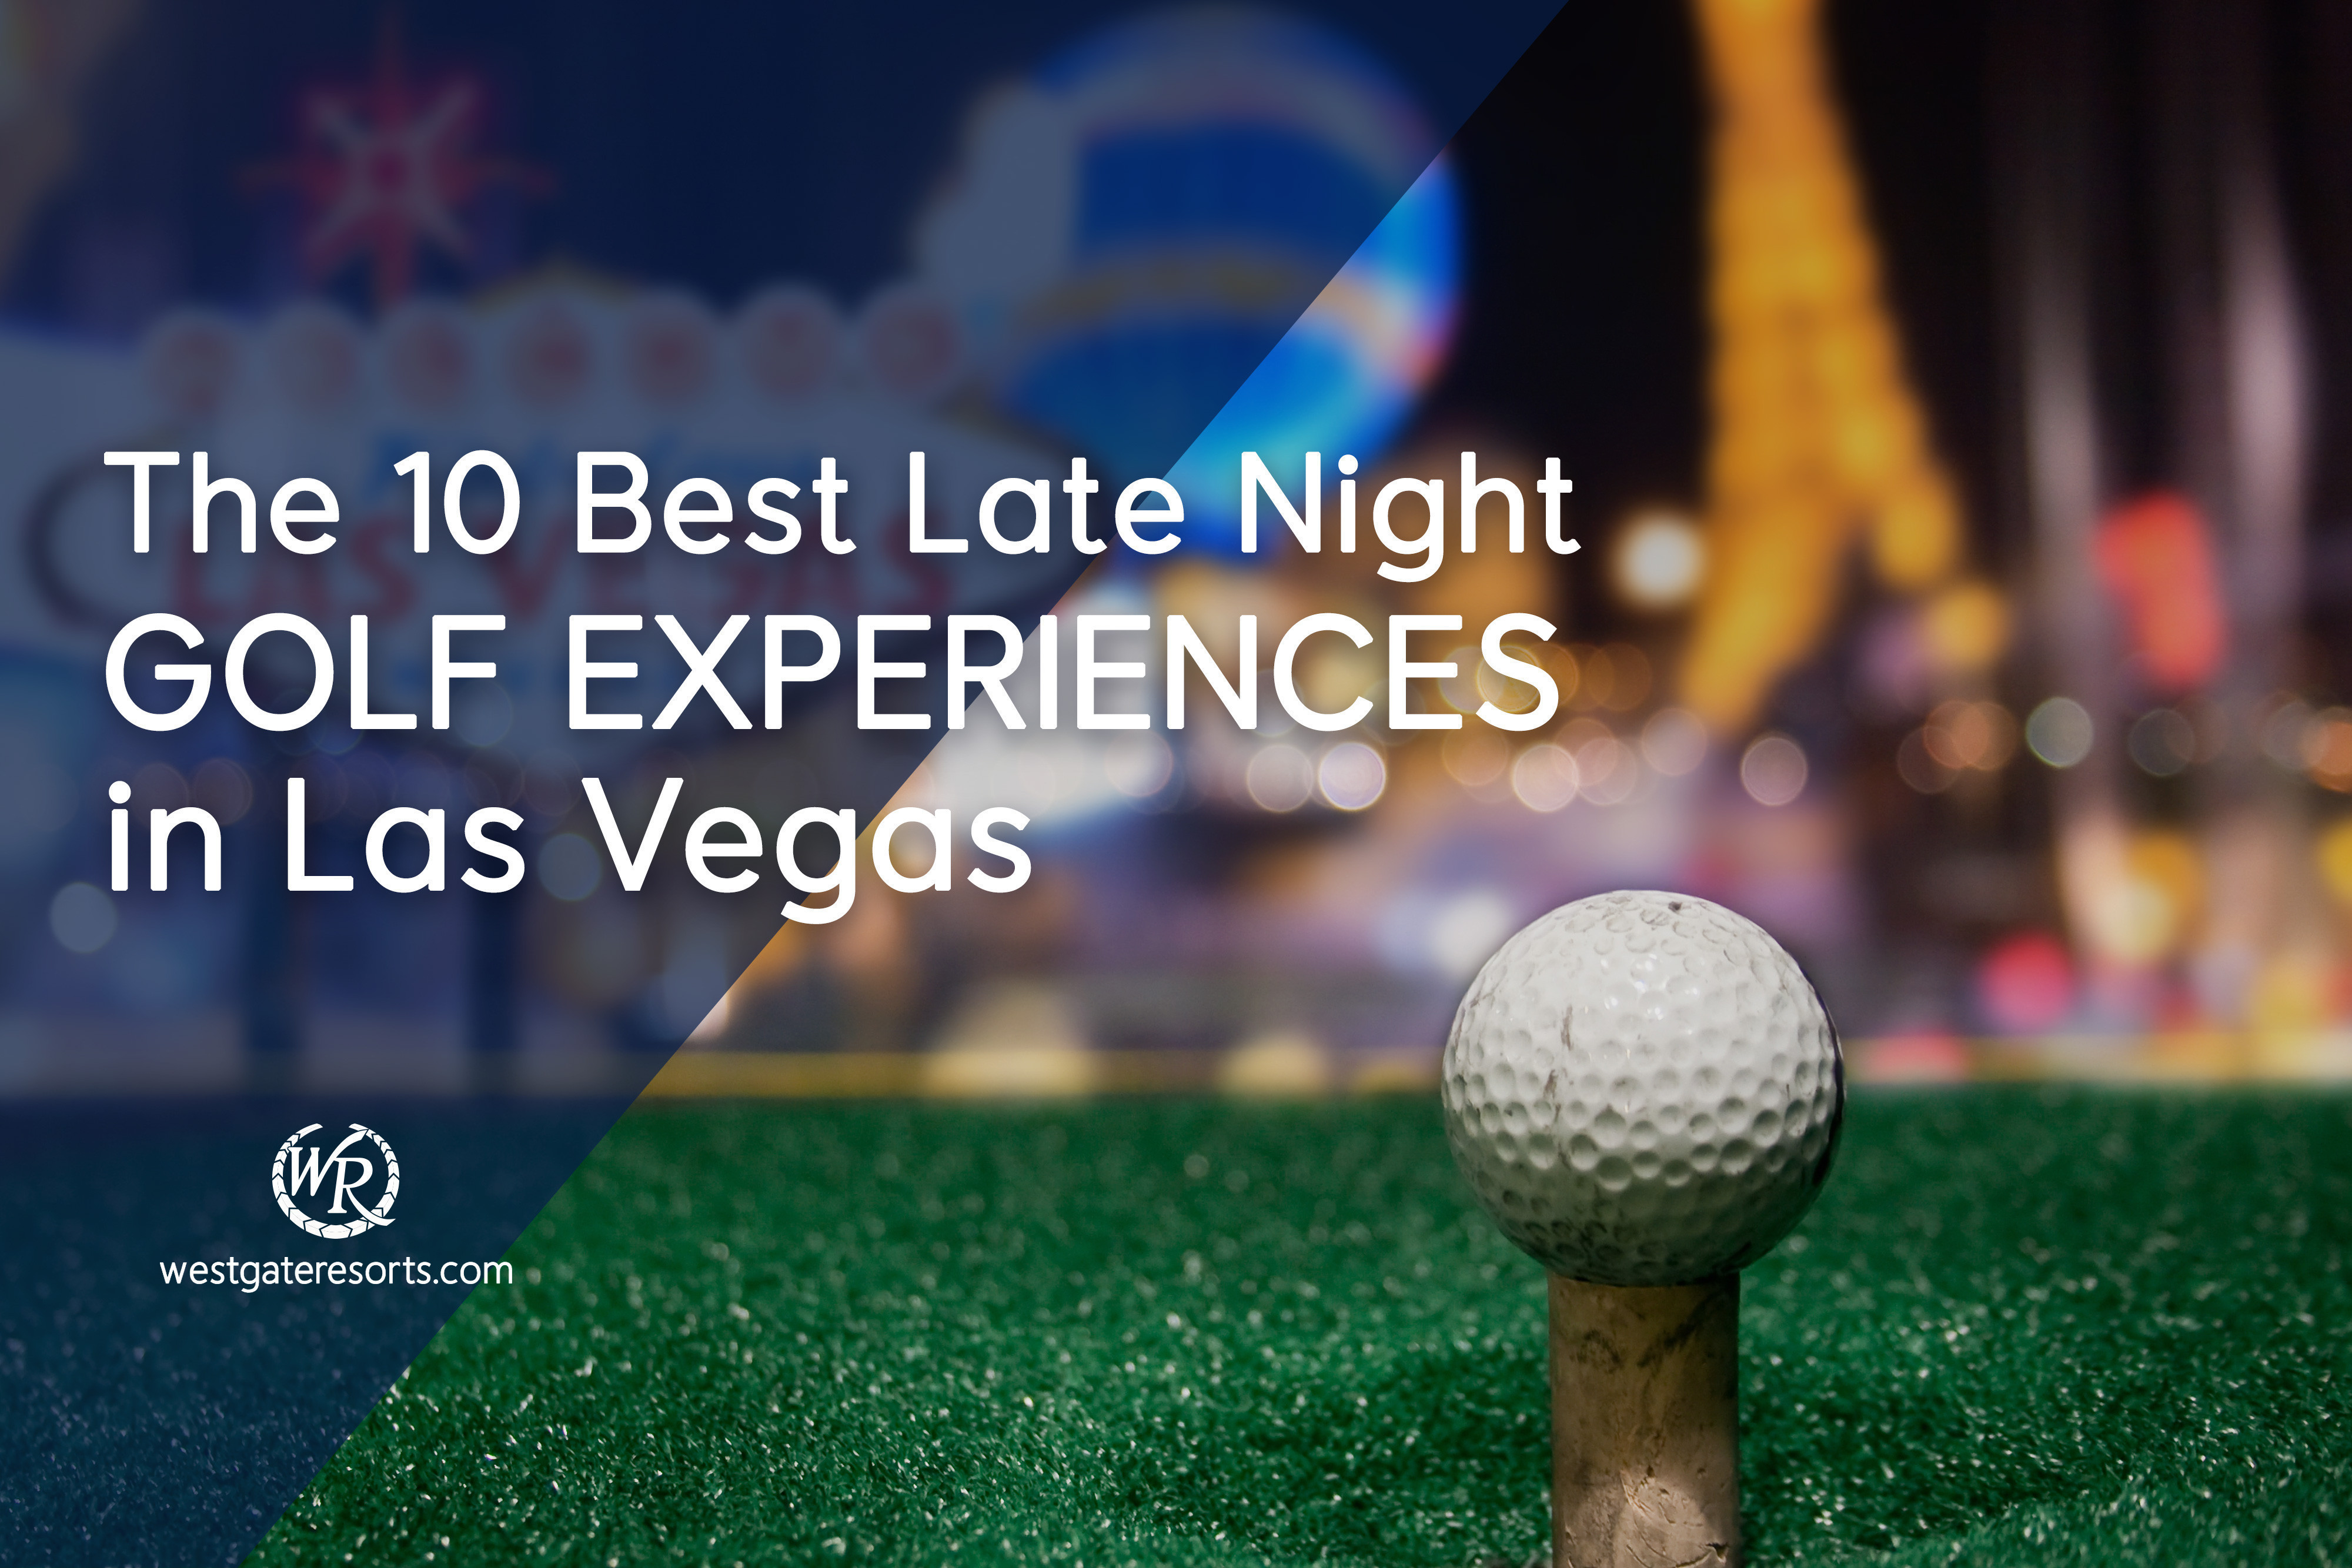 The 10 Best Late Night Golf Experiences in Las Vegas